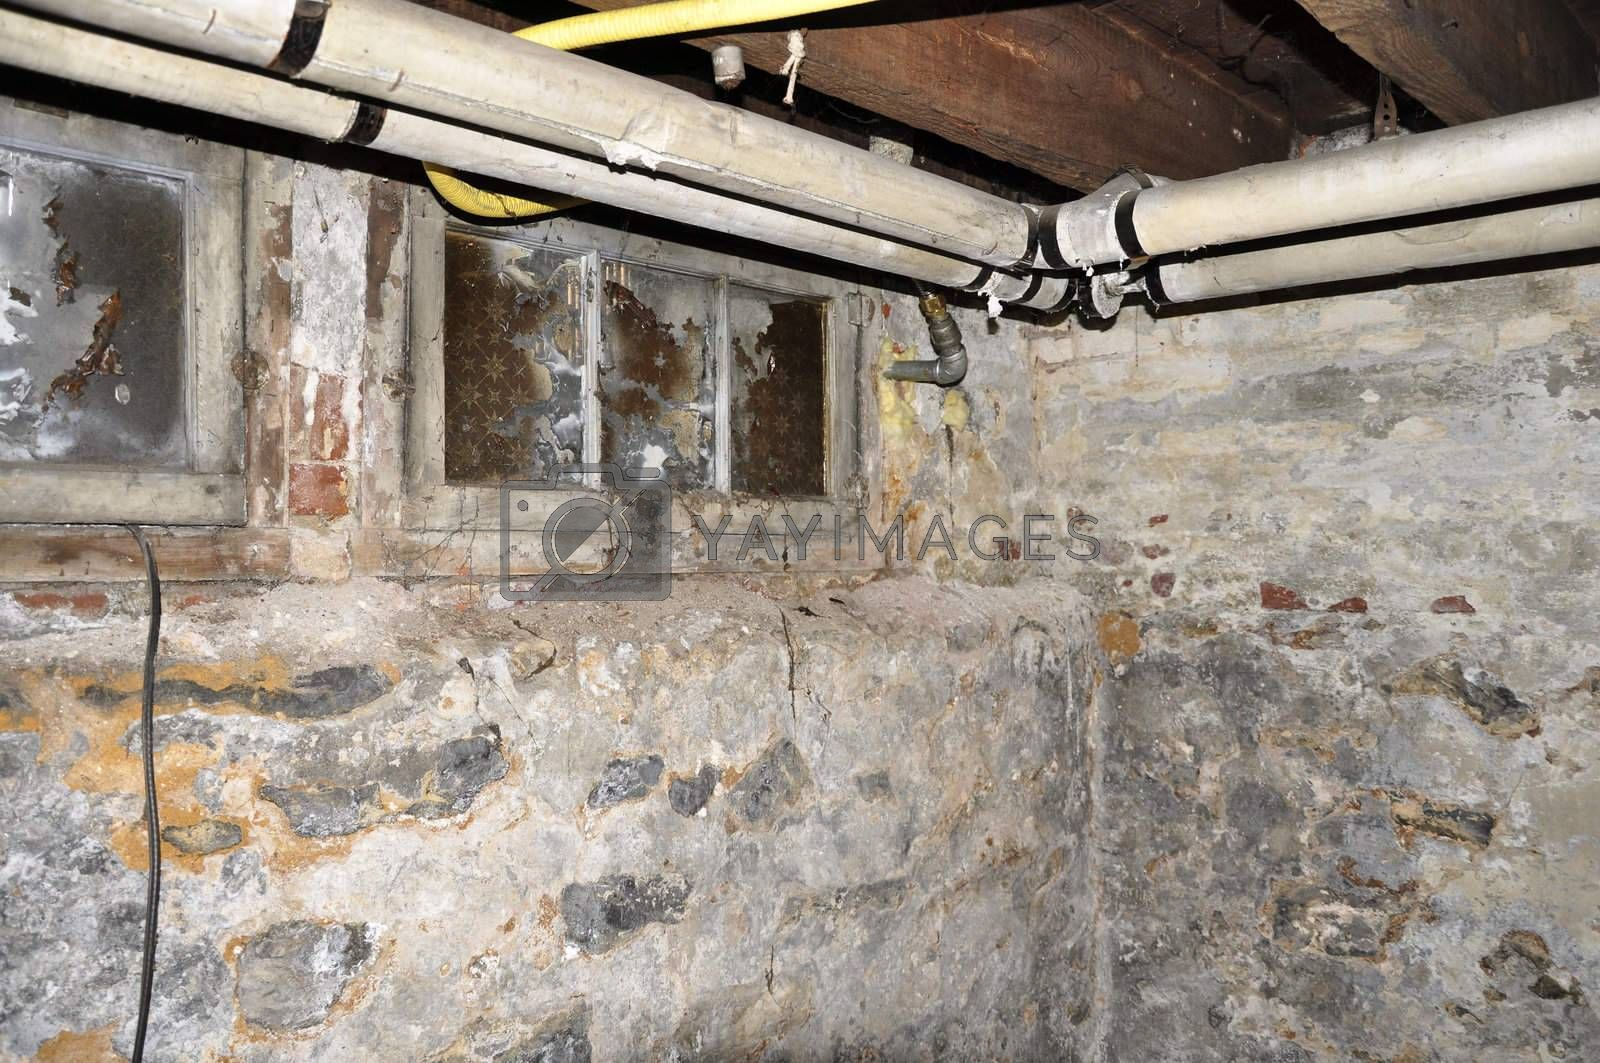 interior plumbing pipes by an old stone basement wall